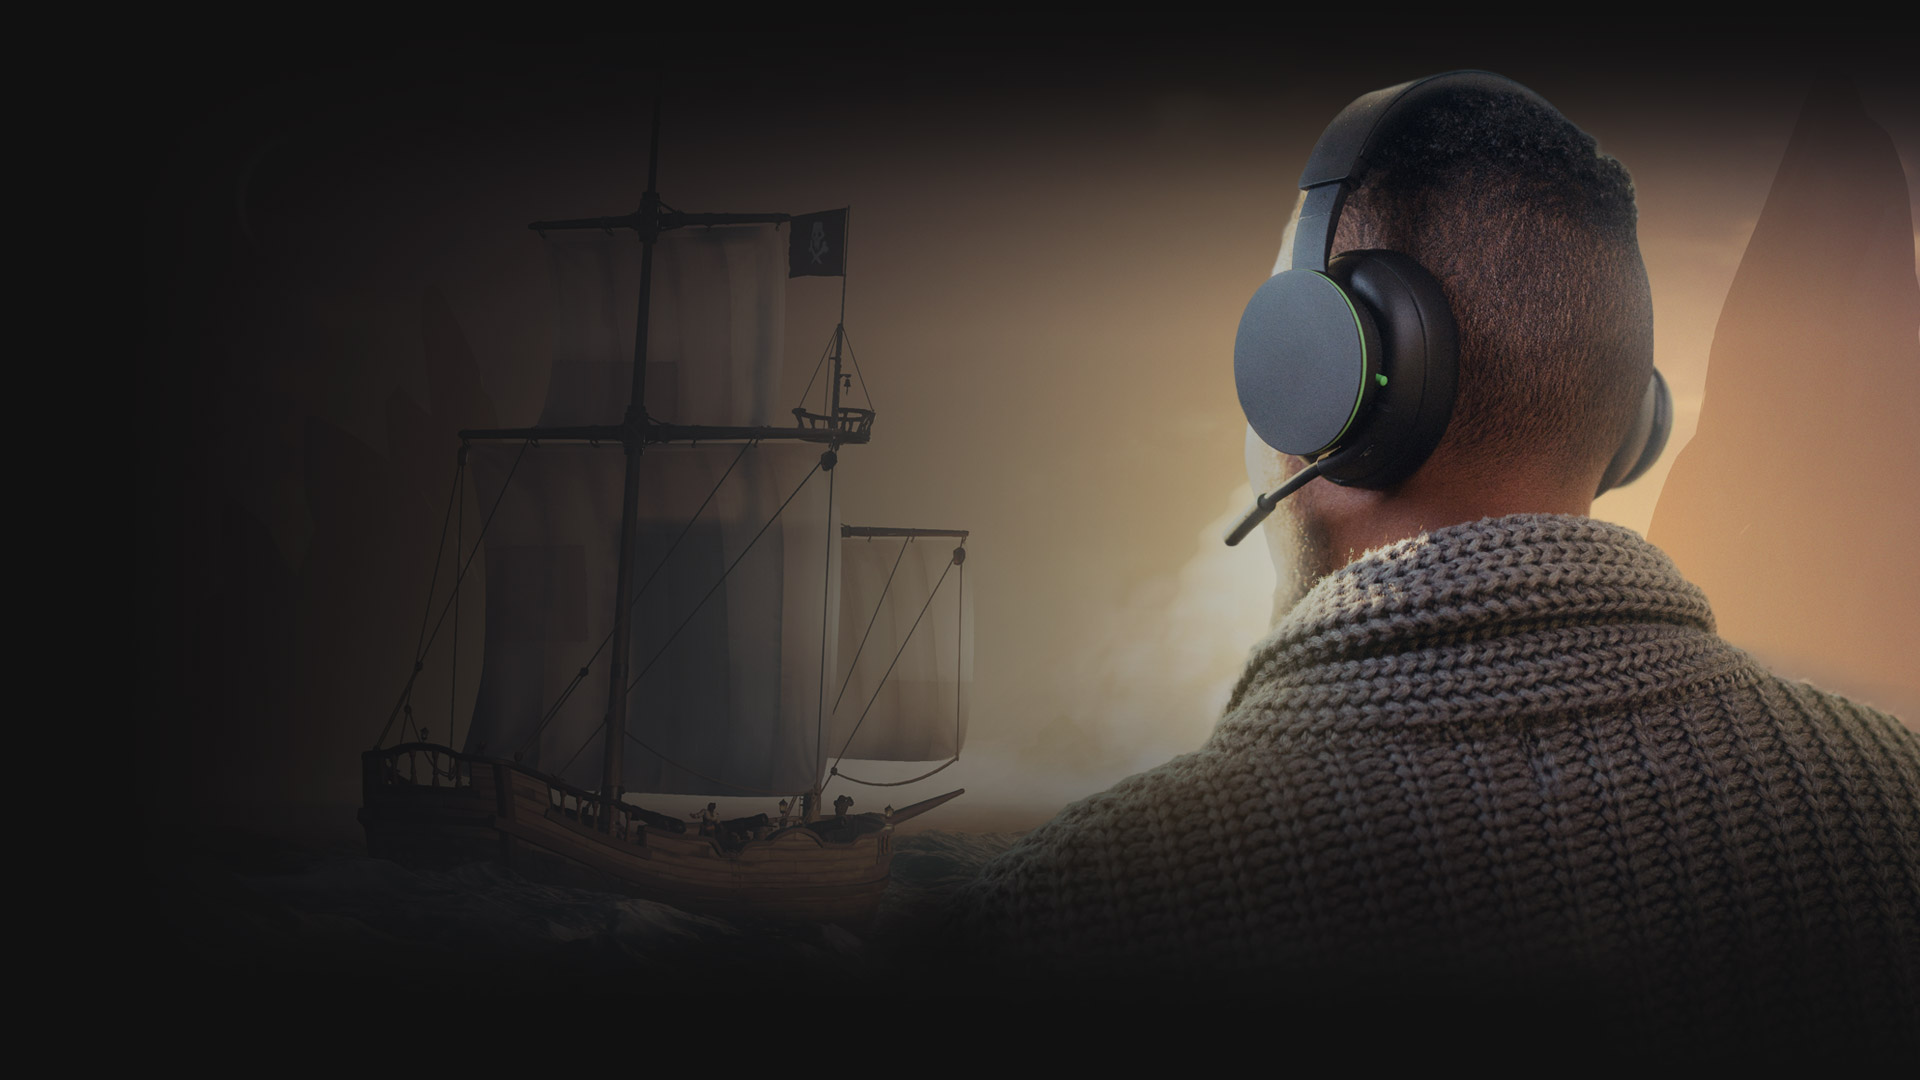 A man looks out over the vast Sea of Thieves, with the Xbox Wireless Headset keeping his communication with his crewmates clear.